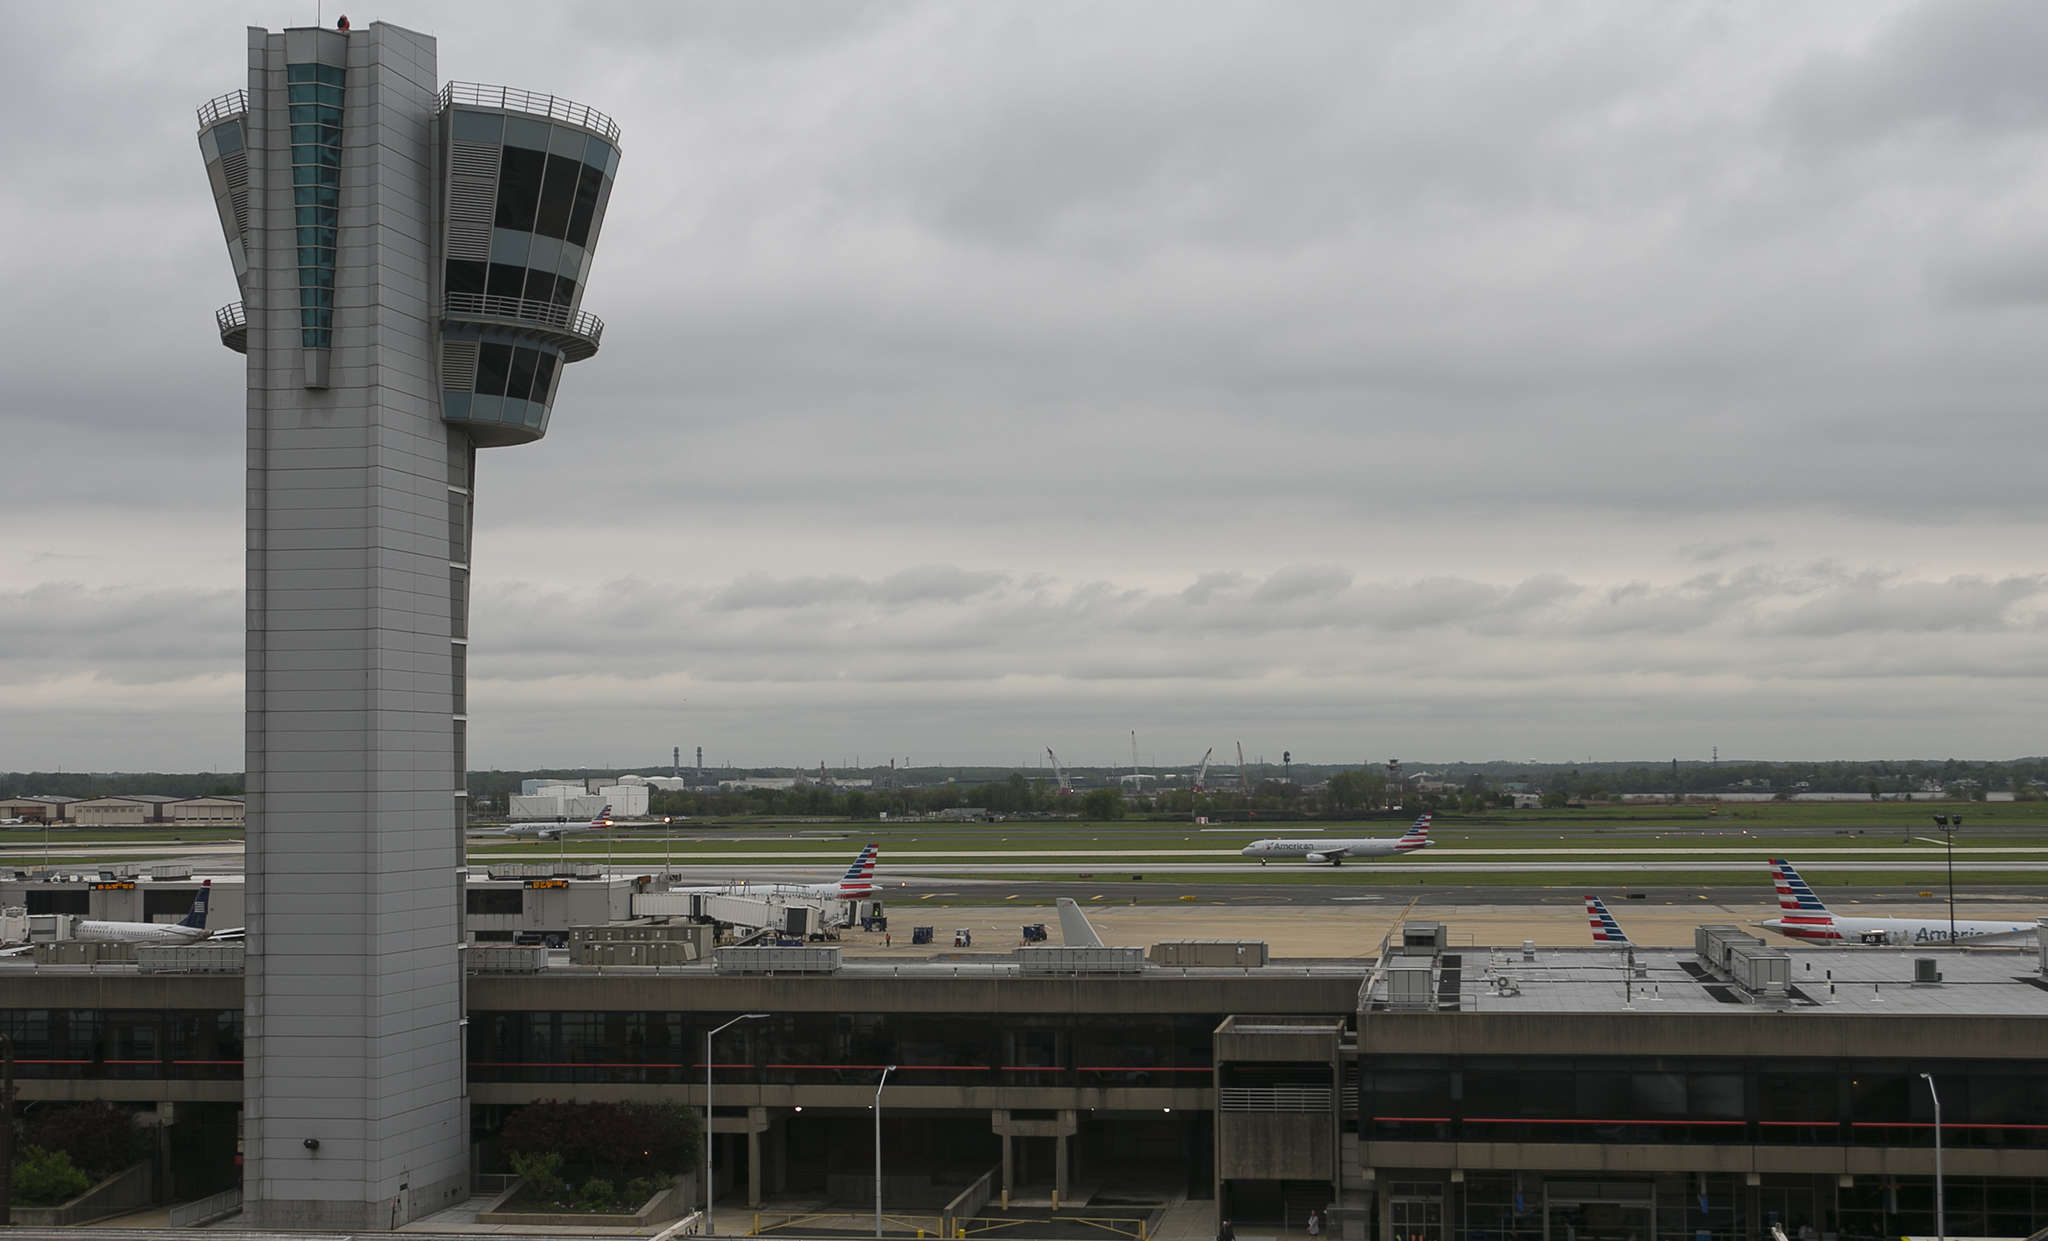 Two Philadelphia Airport runways are part of Tinicum Township. An airport expansion is planned.